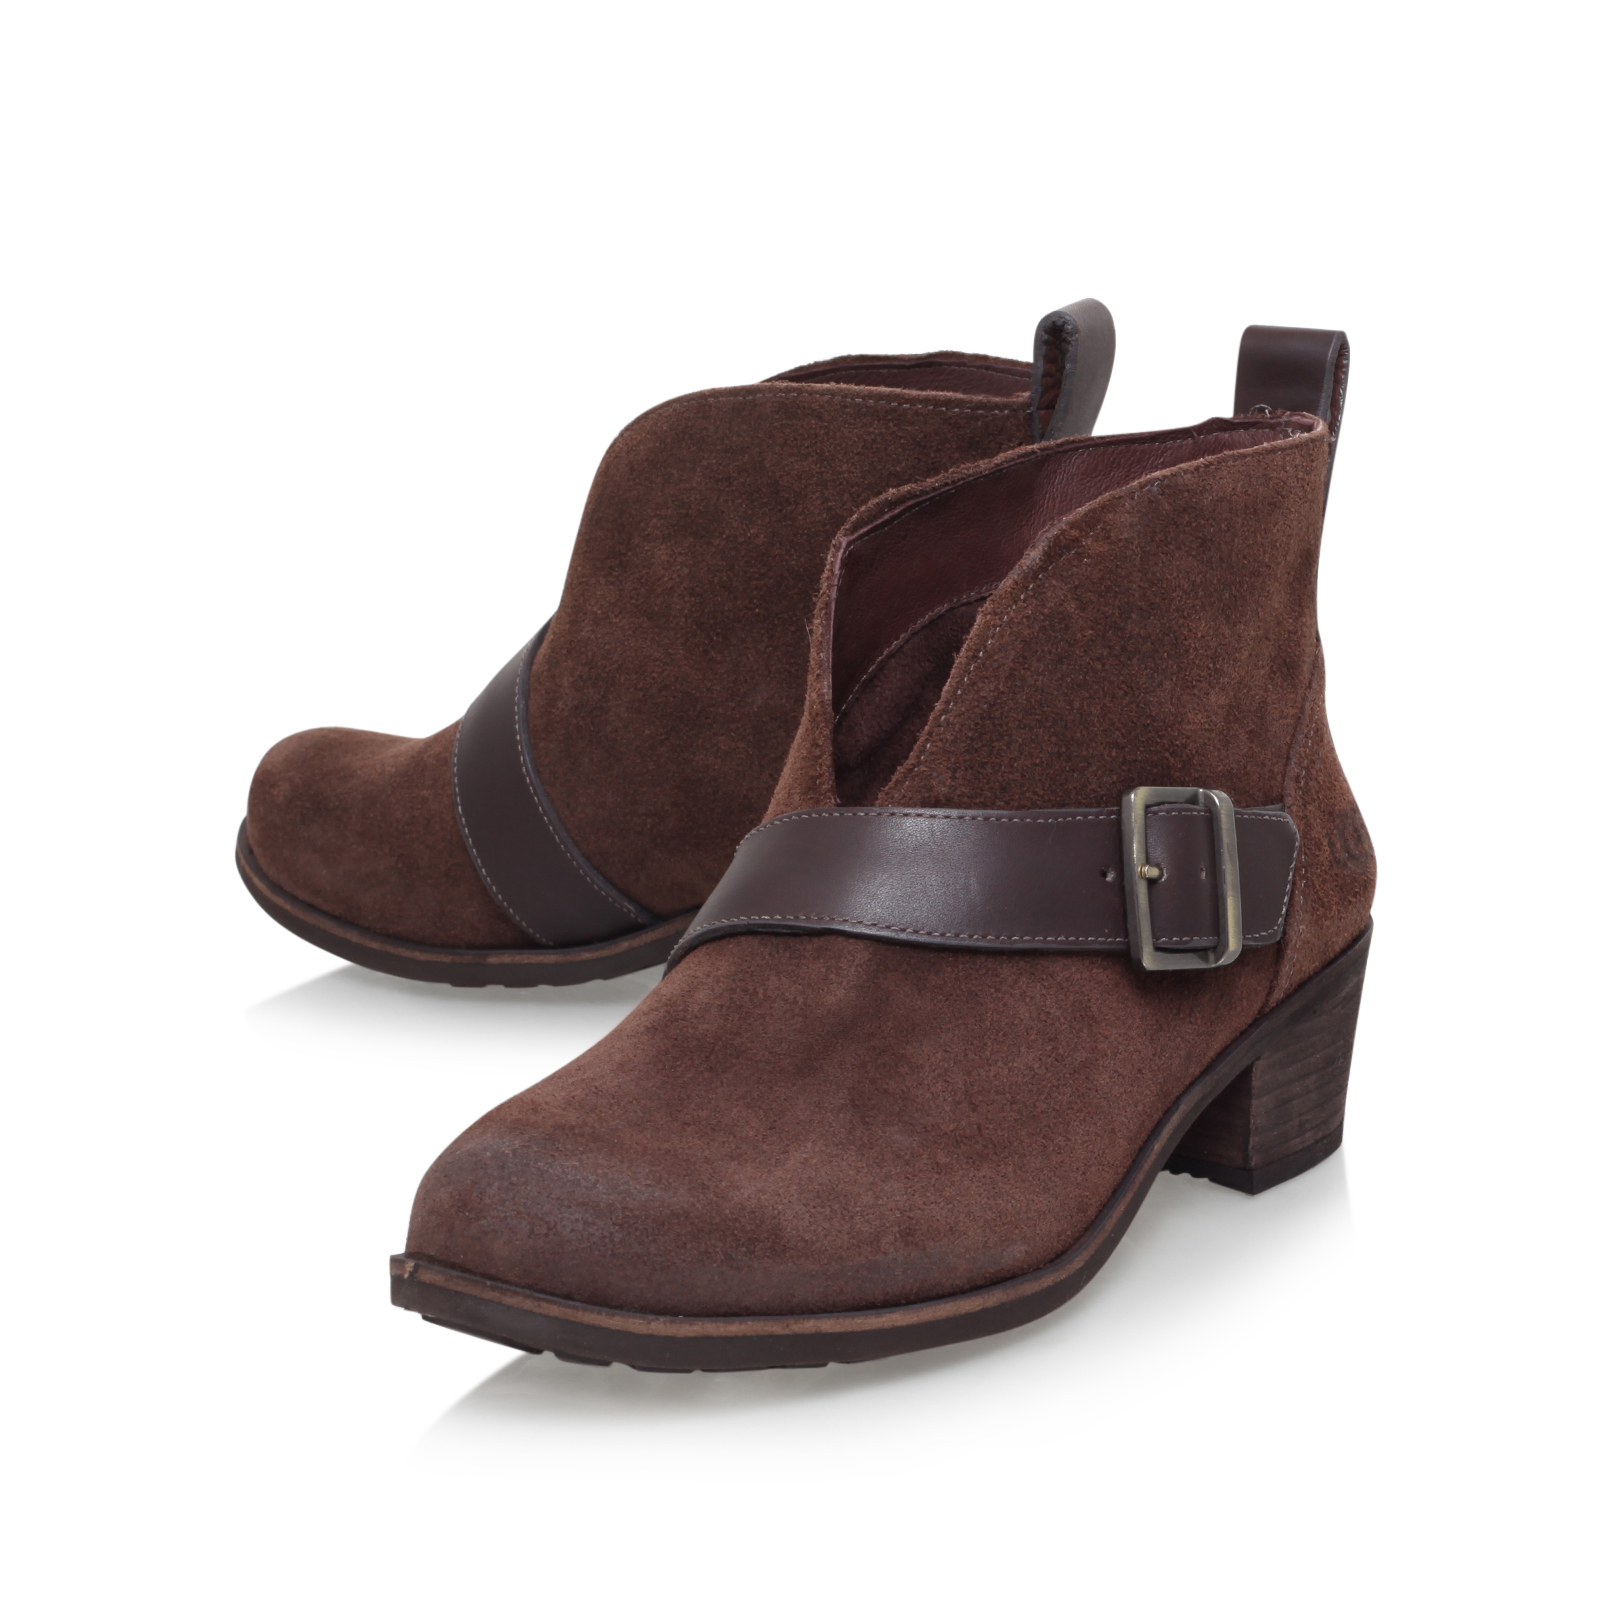 0148b7edd24 WRIGHT BELTED - UGG Boots